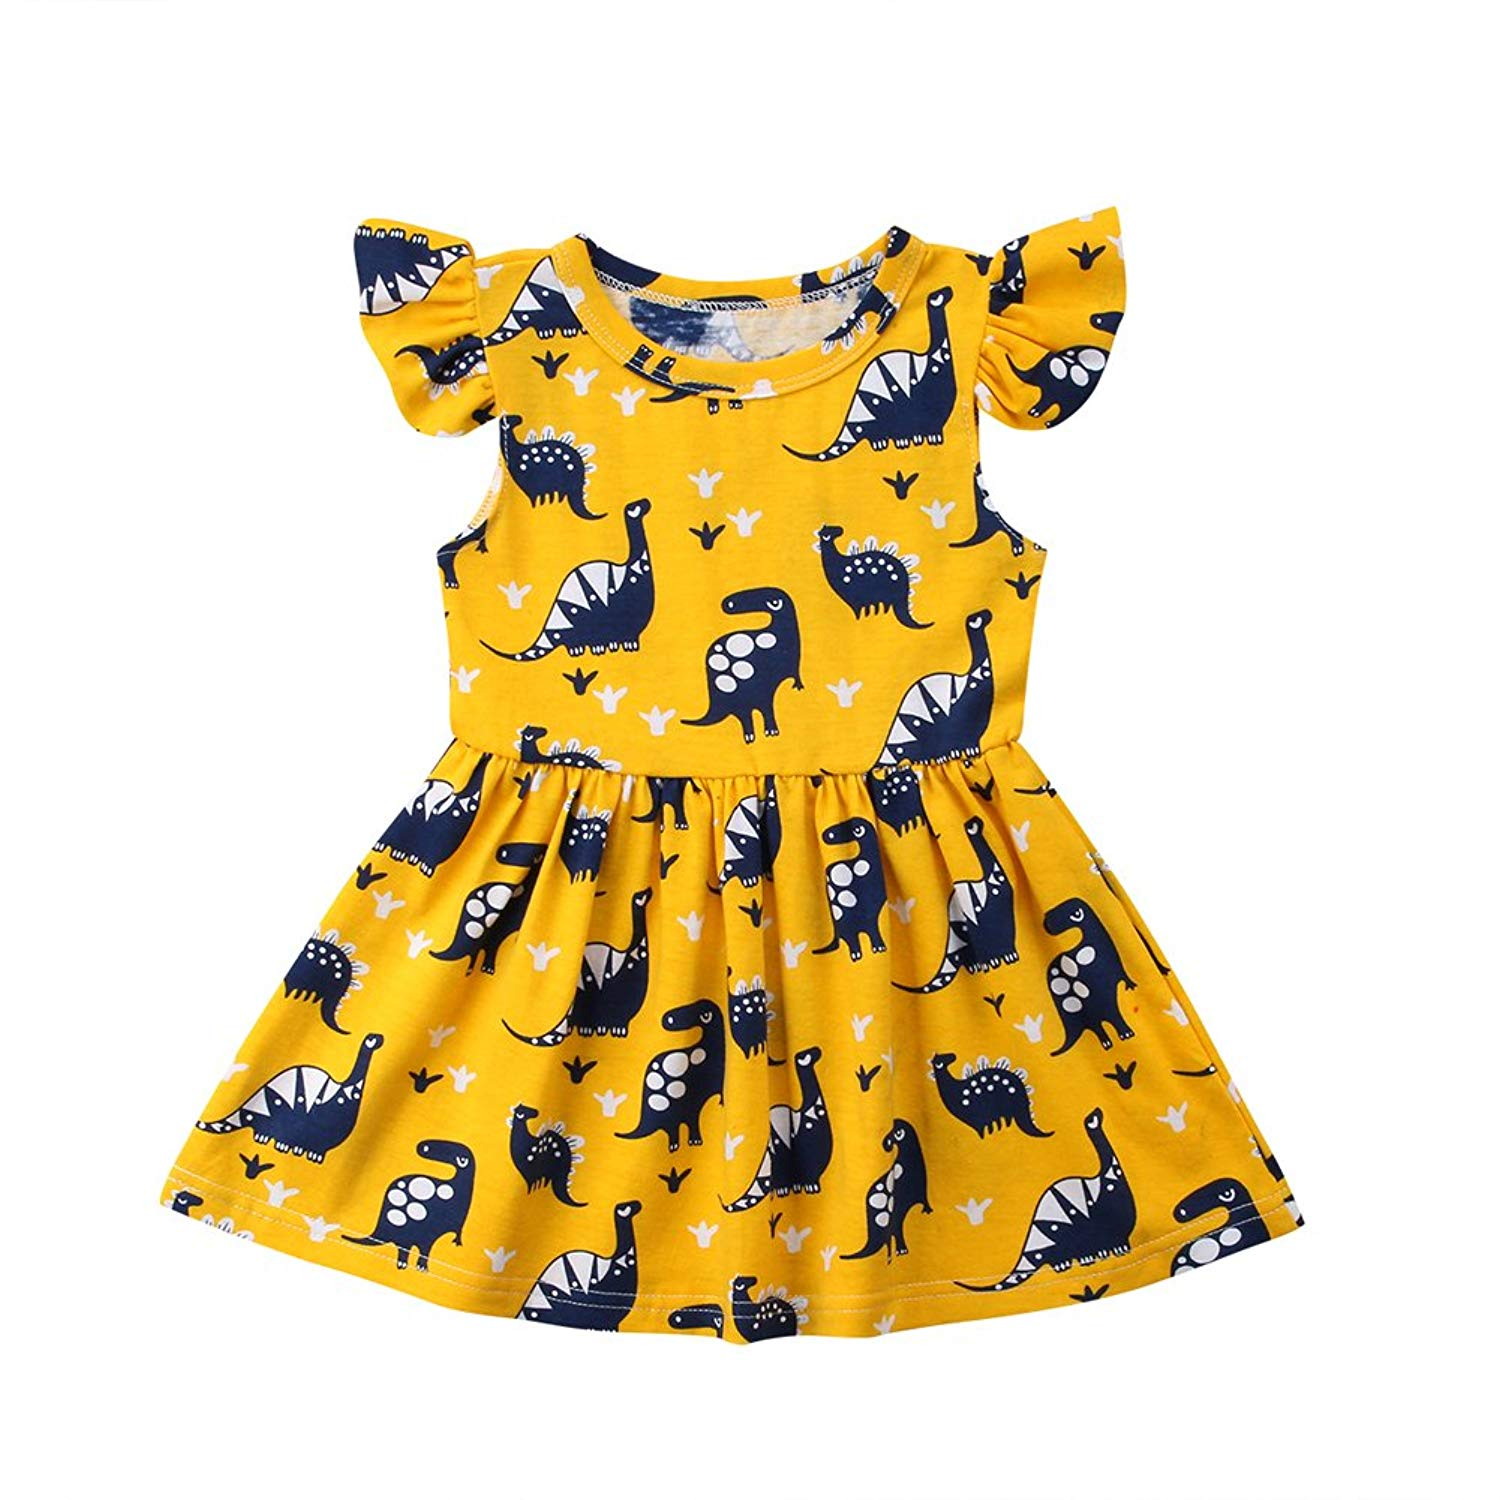 WOCACHI Toddler Baby Dresses Baby Girls Candy Color Long Sleeve Solid Princess Casual Toddler Kids Dress